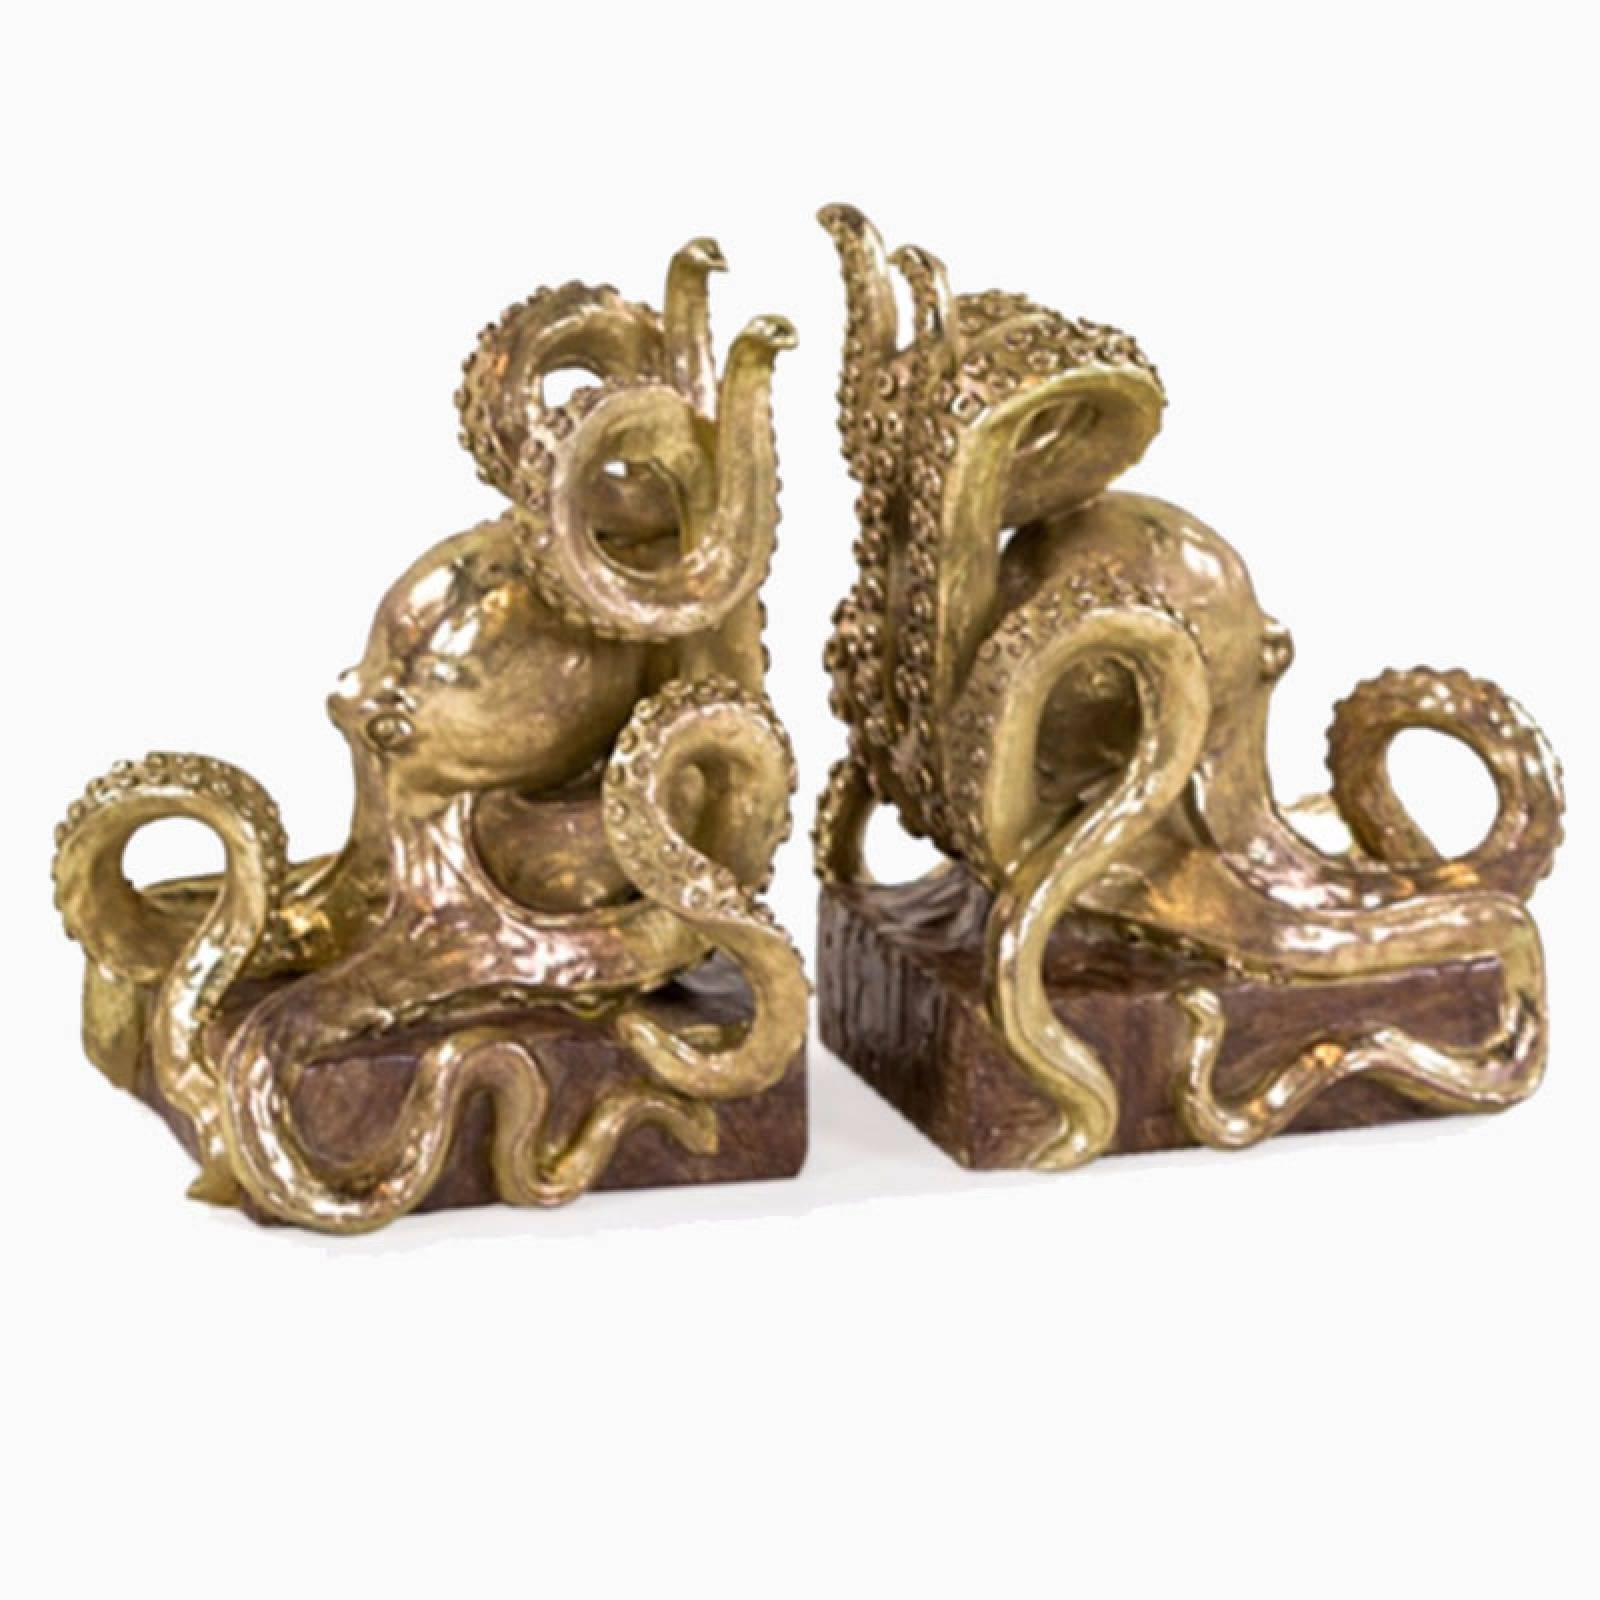 Gold Octopus Bookends thumbnails